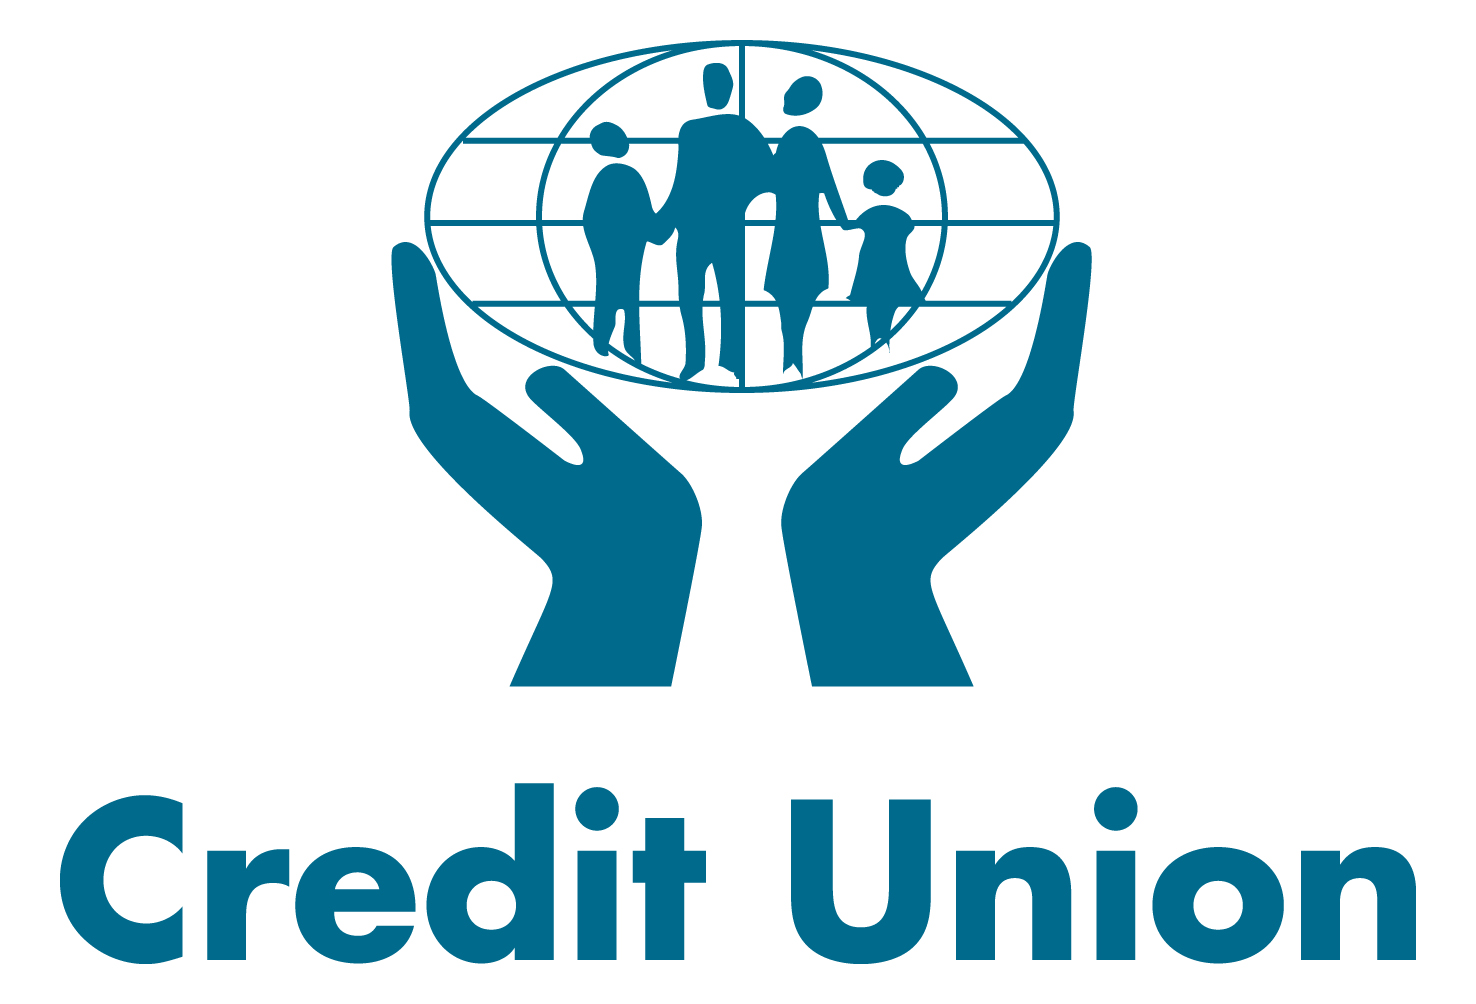 Credit Union Logo.jpg